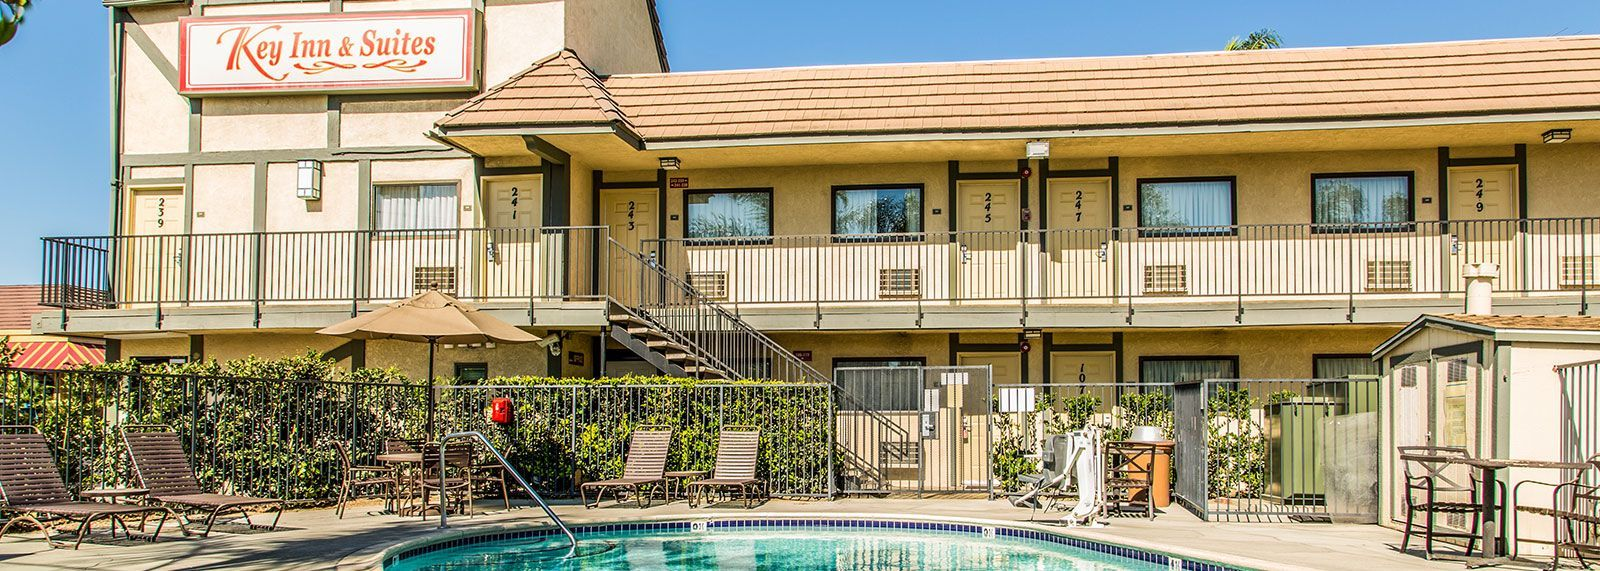 key-inn-and-suites-tustin-california-home1-top